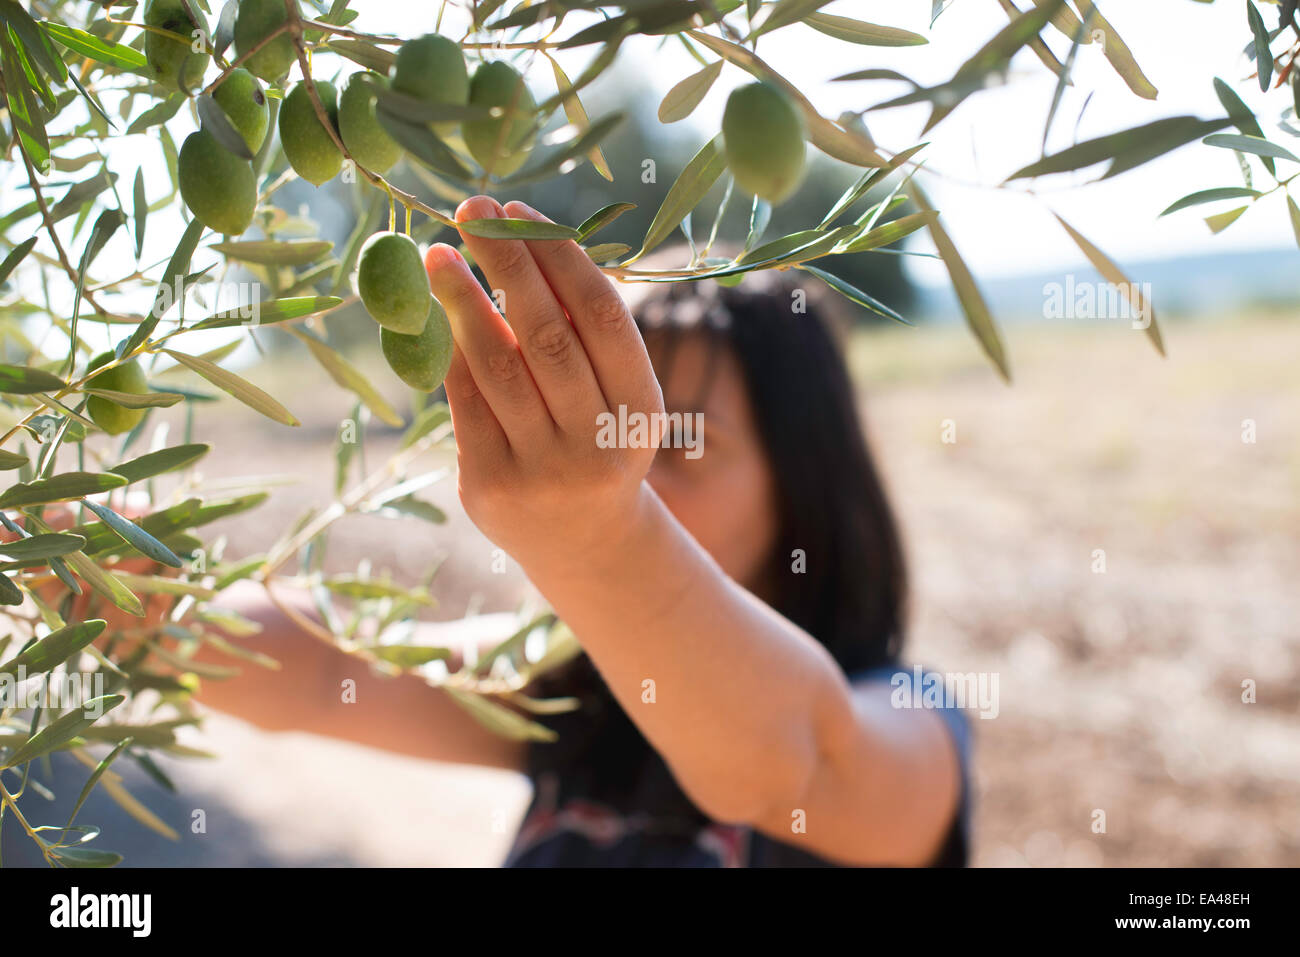 Cueillette des olives.Woman holding olive branch Photo Stock